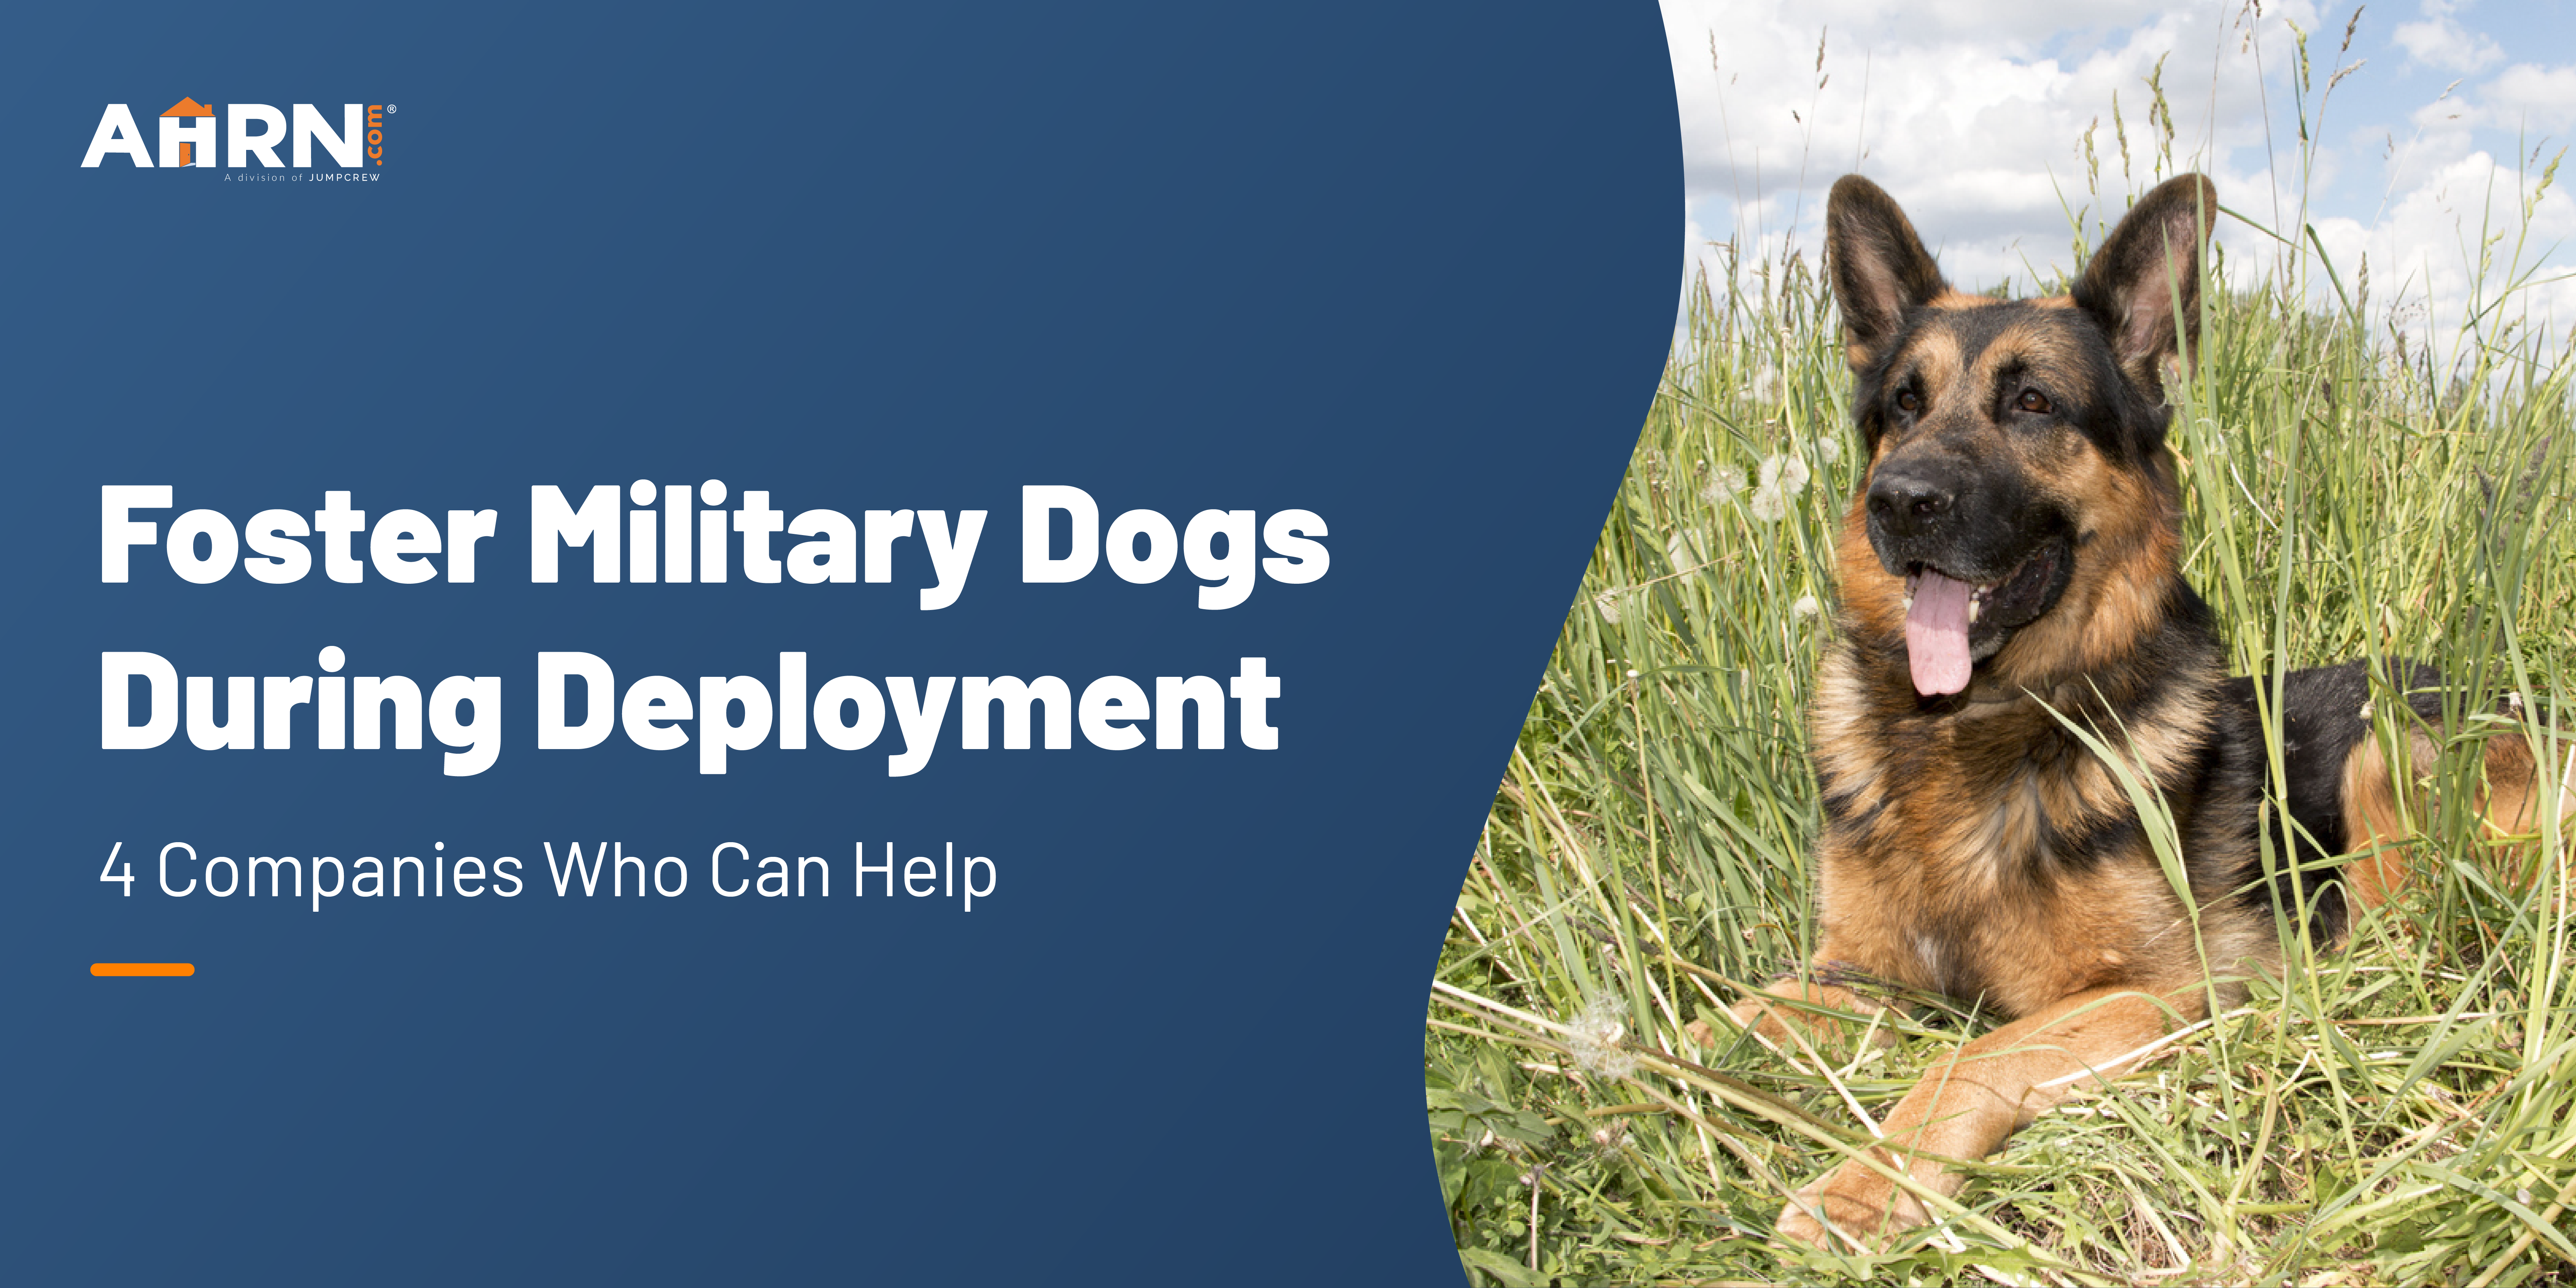 Foster Military Dogs During Deployment